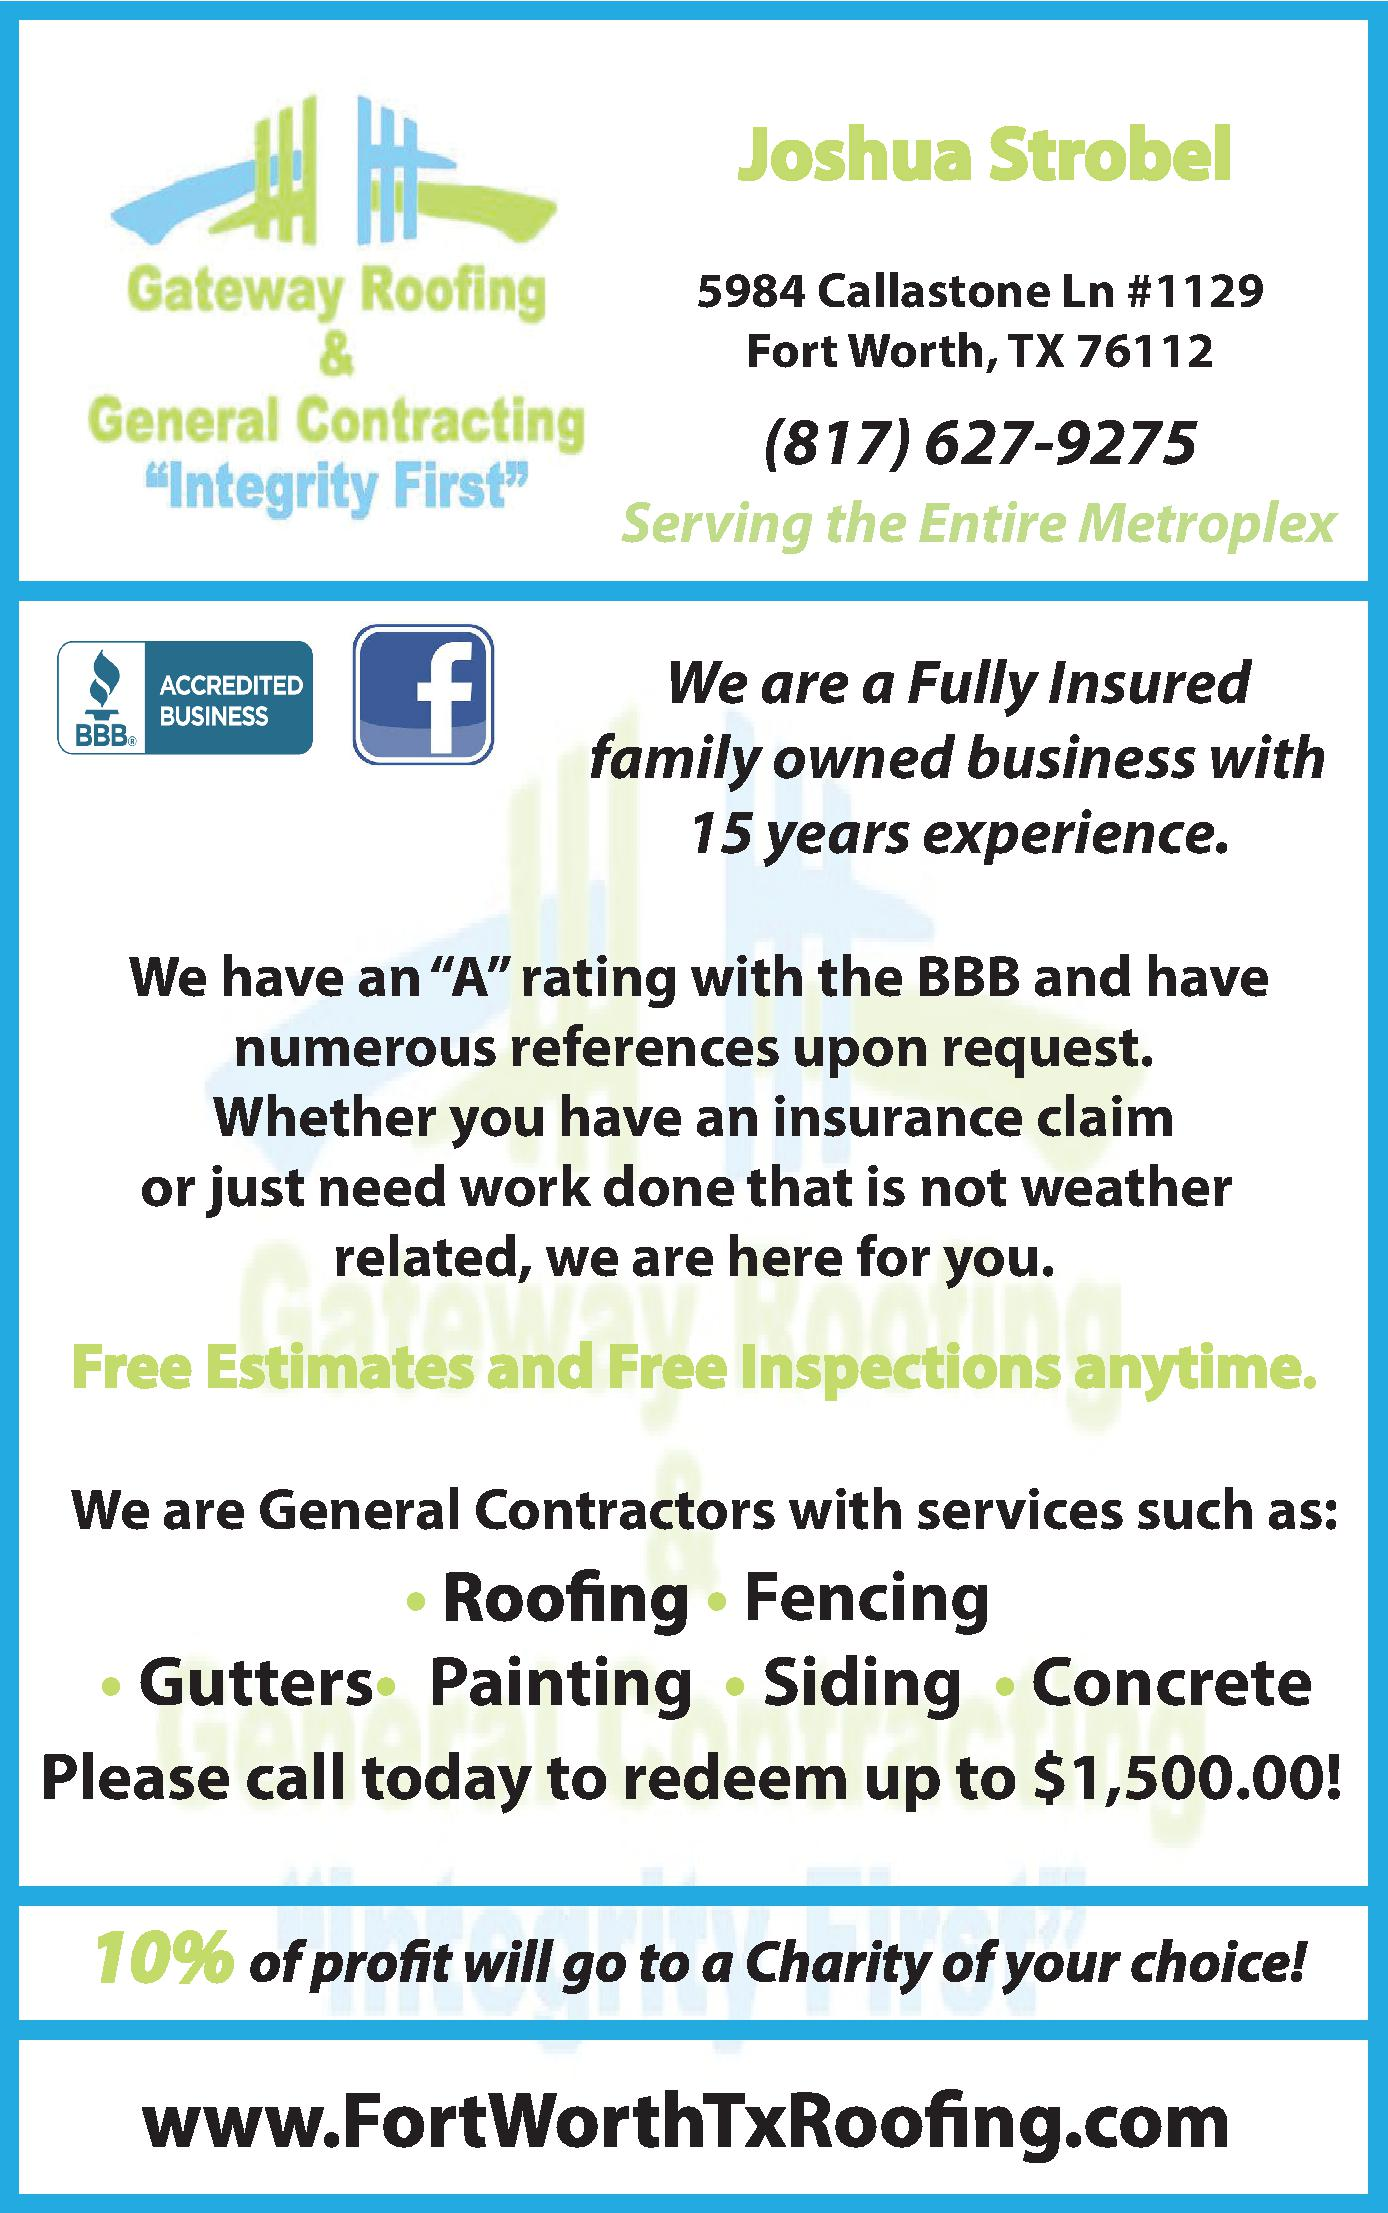 Gateway Roofing & General Contracting